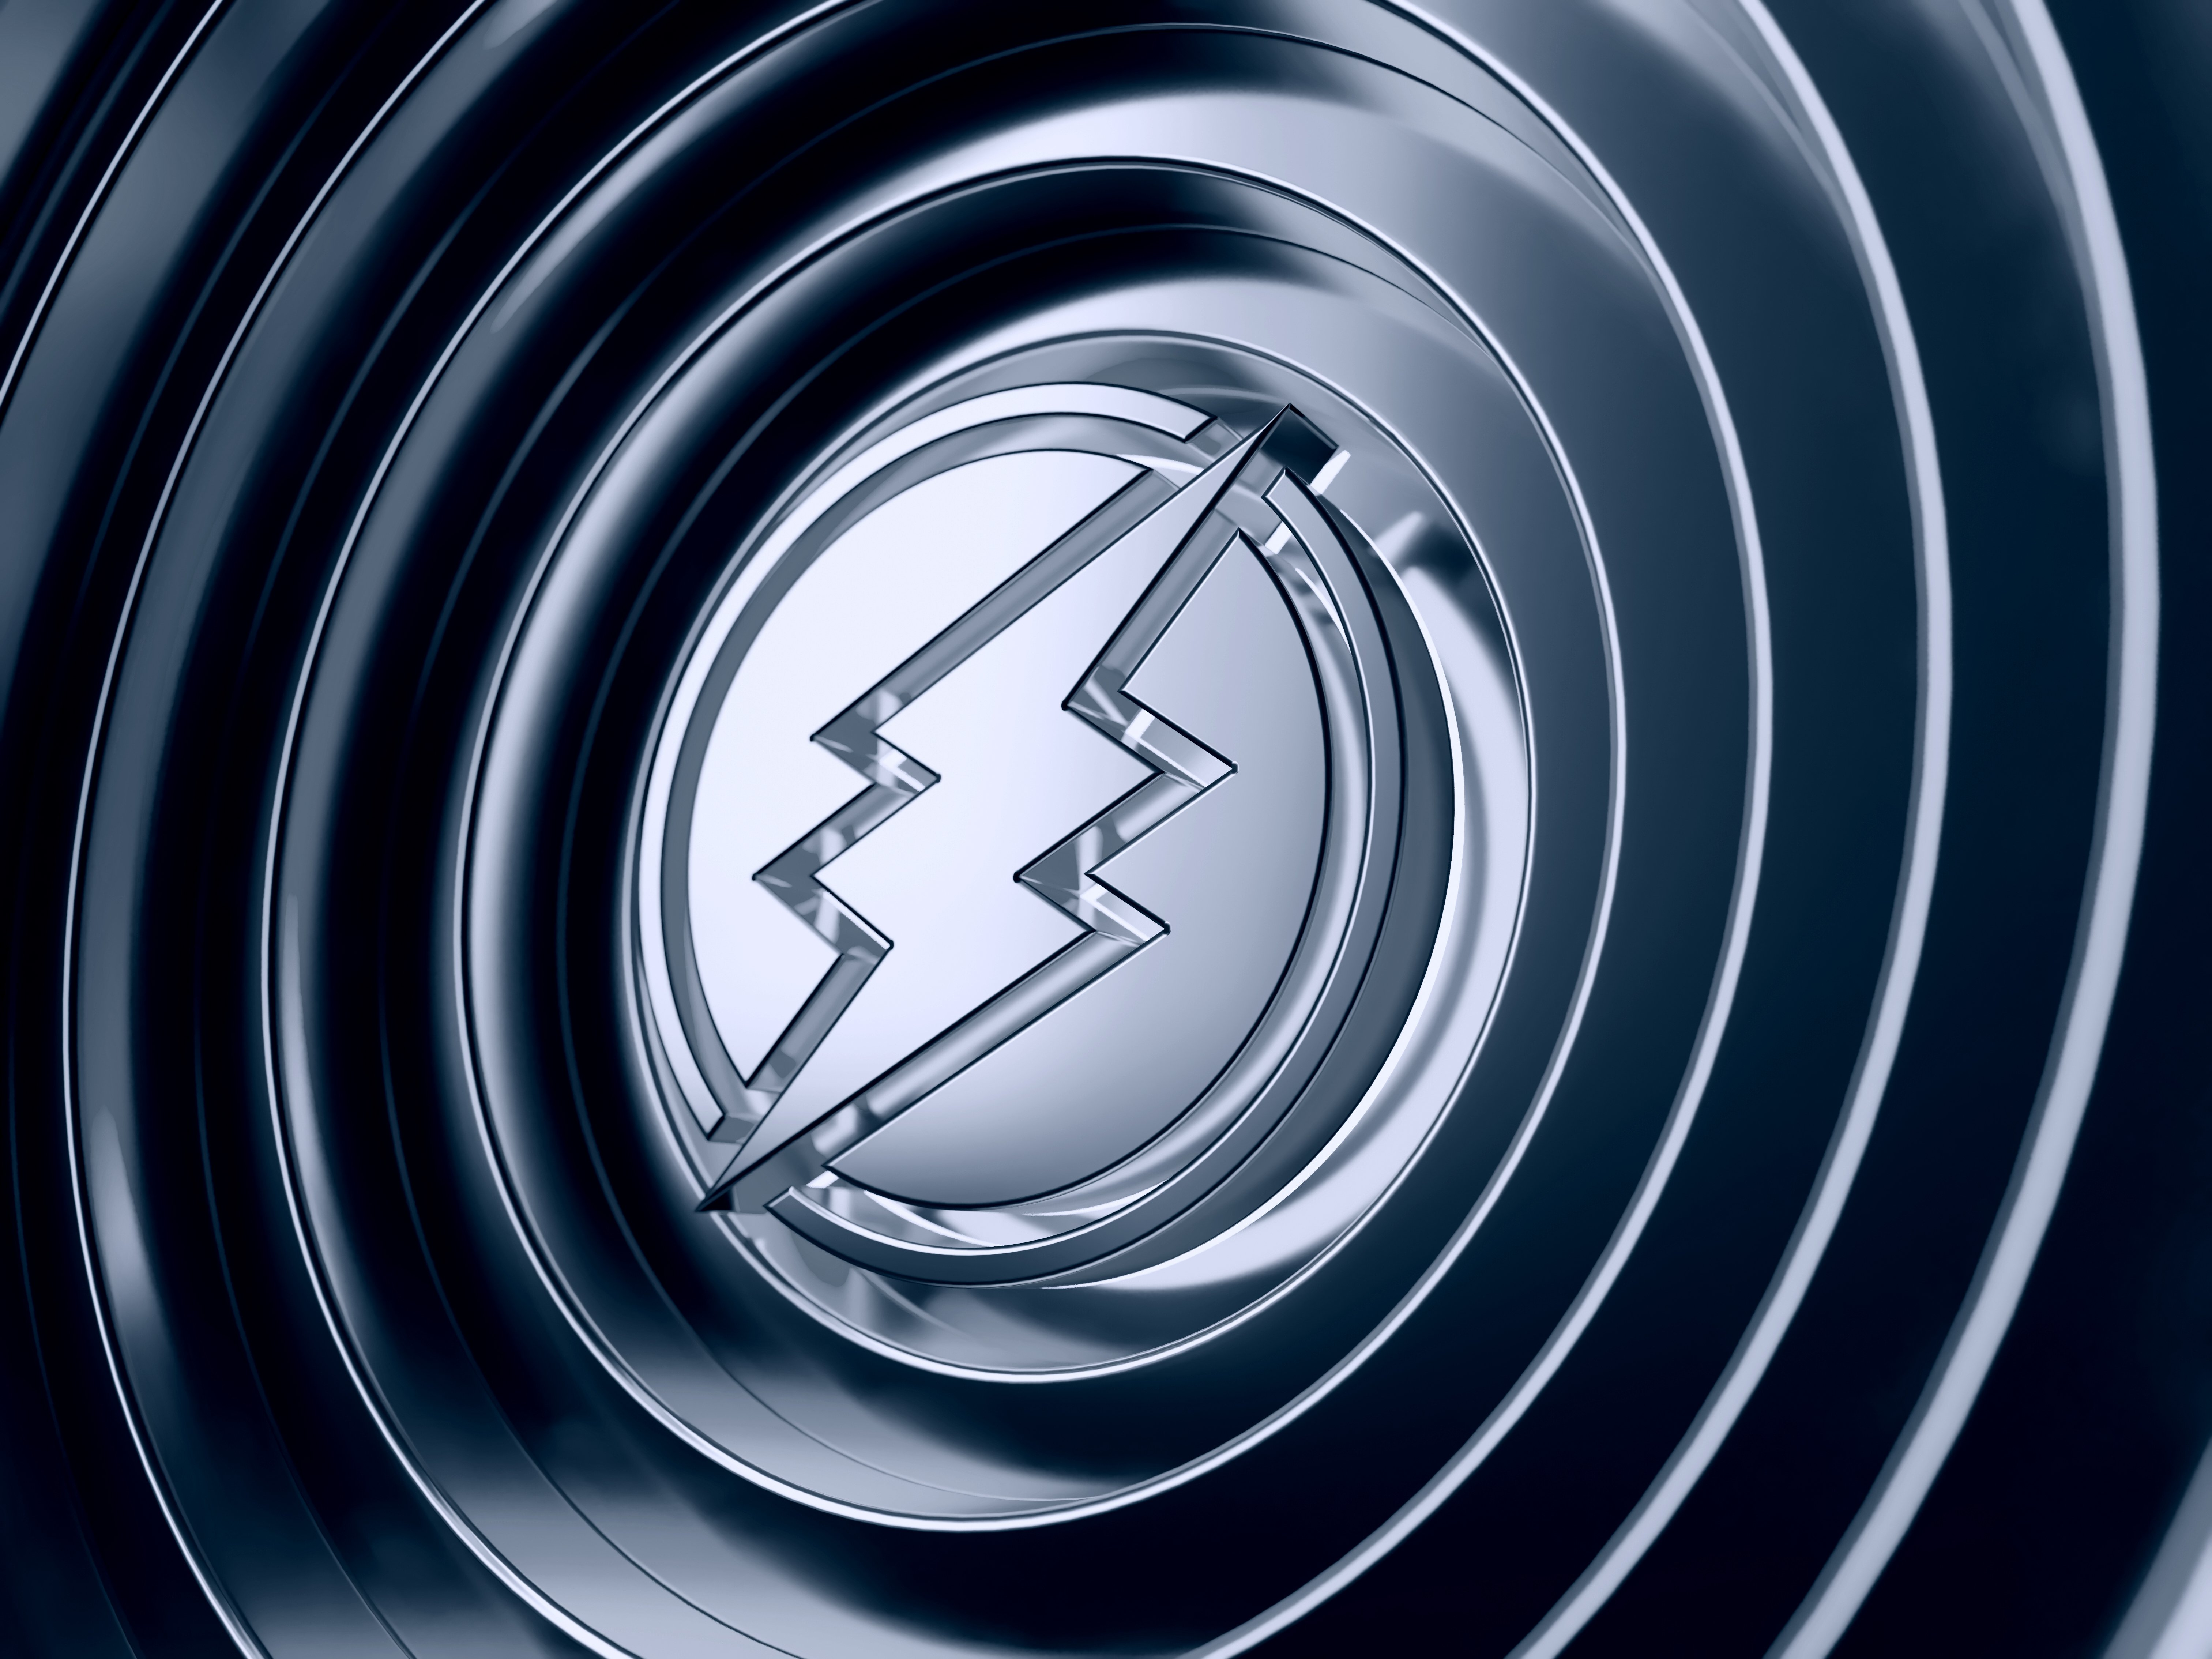 Electroneum ETN logo with metallic reflections on rings background